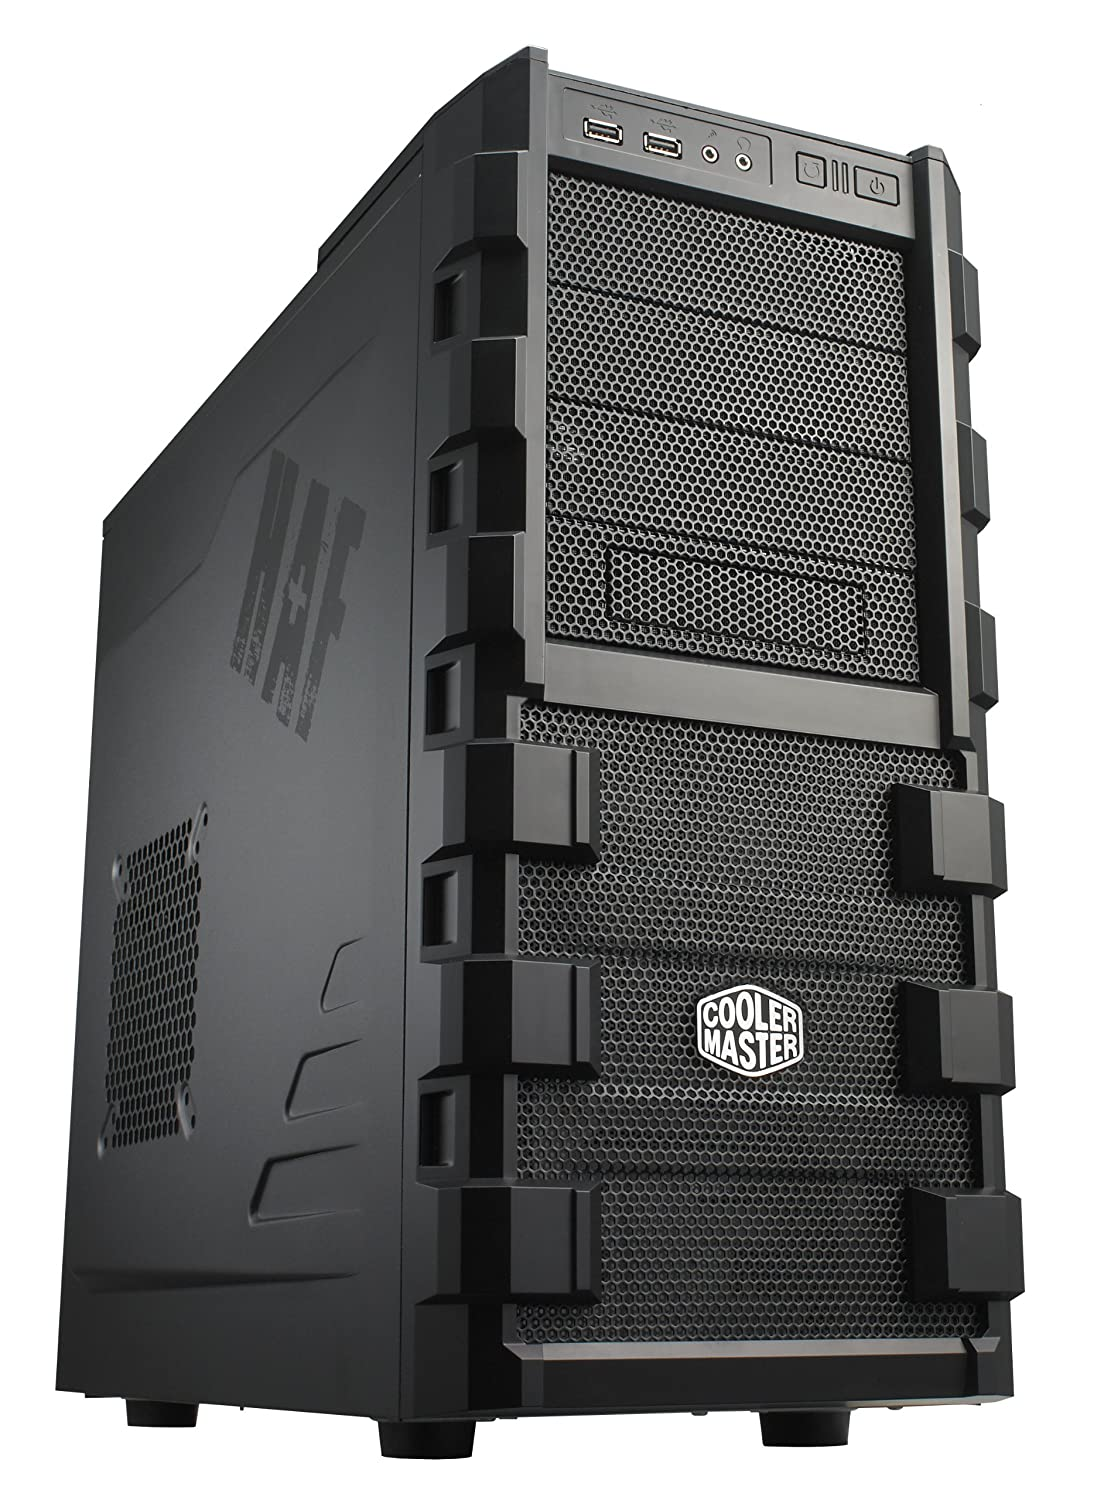 Cooler Master HAF 912 - Build a Gaming PC: February 2014 Tax Refund Edition